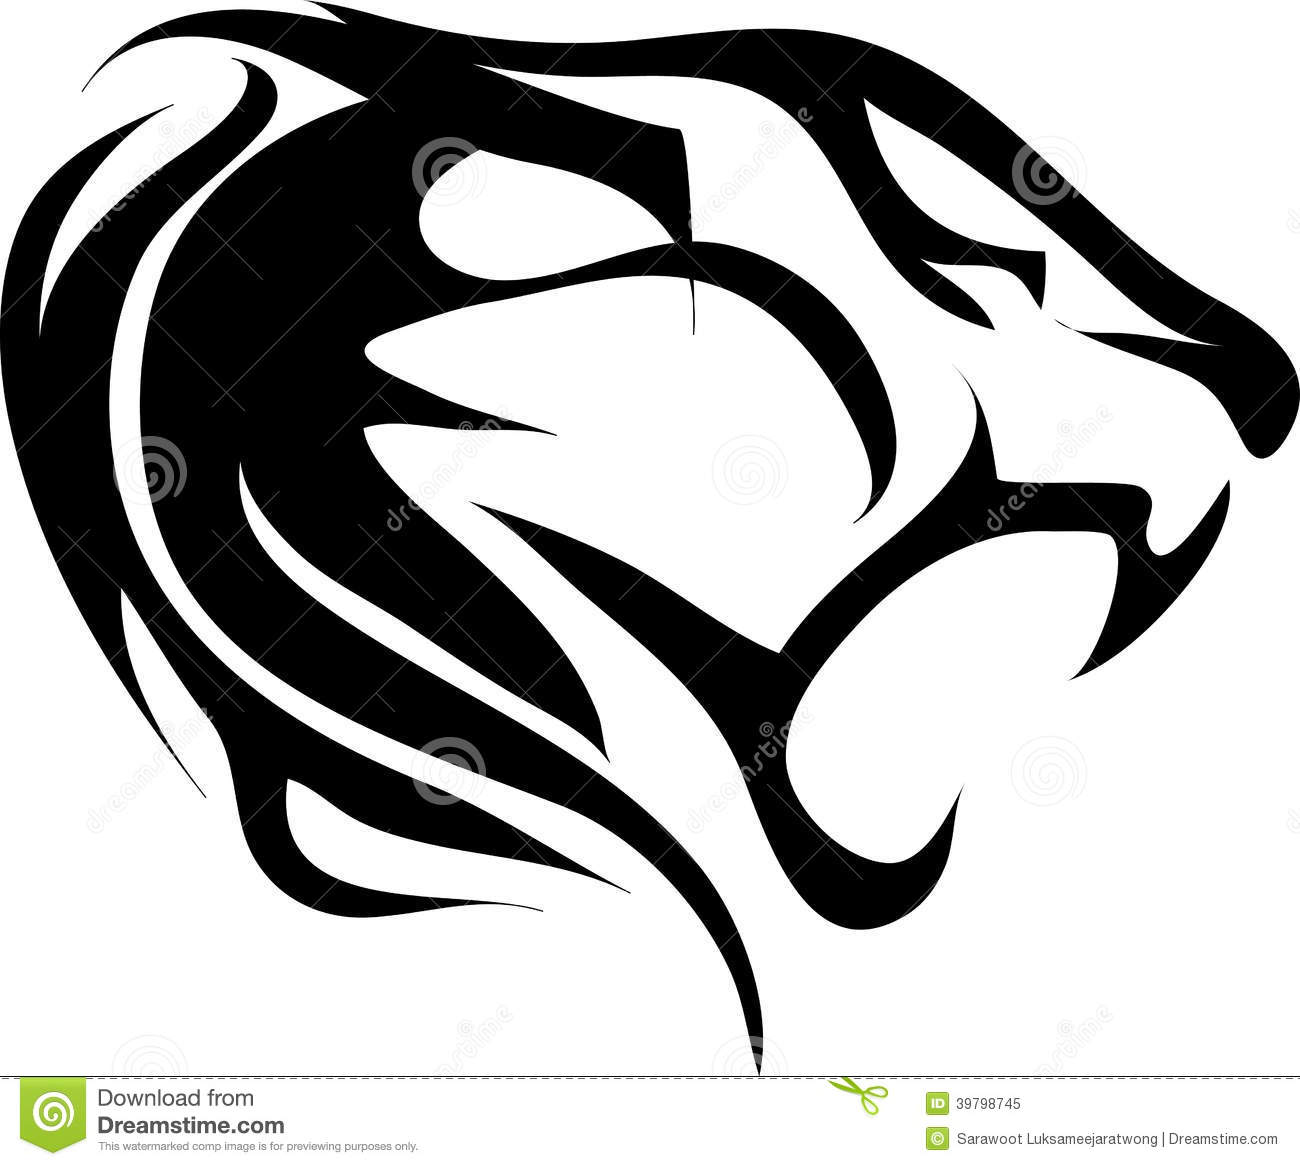 Tiger head logo design - photo#19